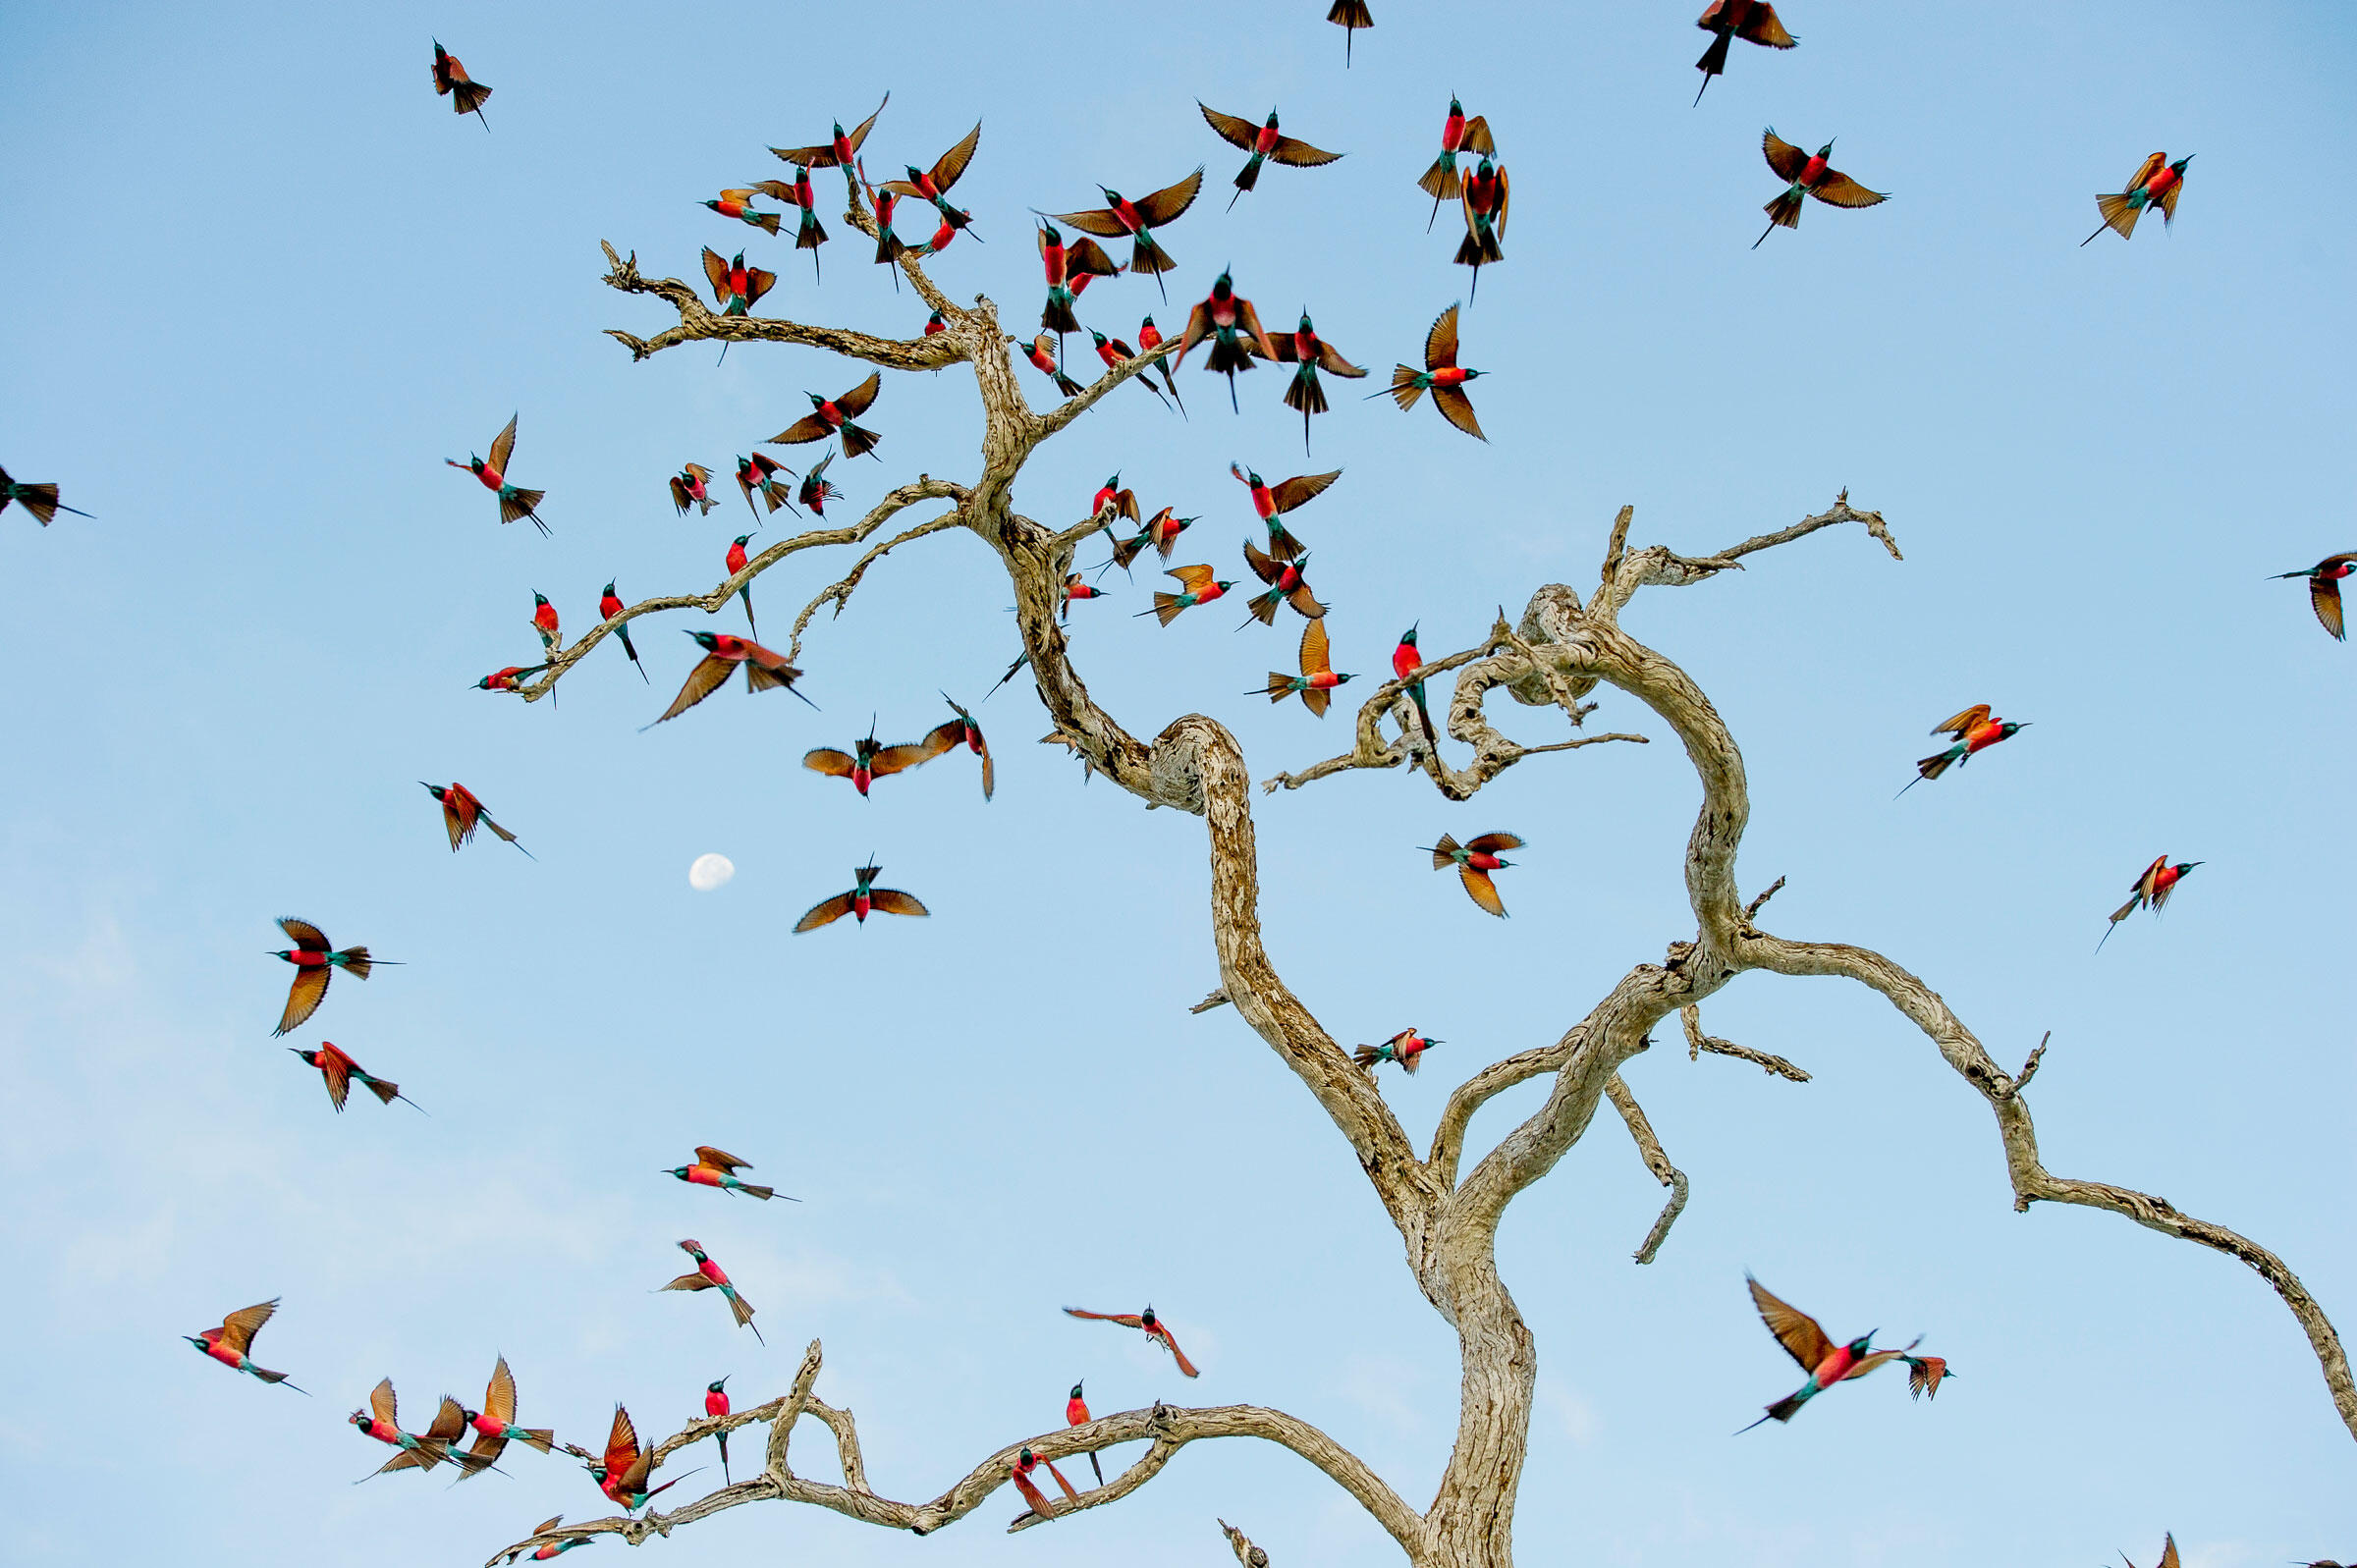 The Northern Carmine Bee-eater is a beautiful and gregarious seasonal visitor to the Sealous. They are often found early and late in the day roosting in great numbers on trees and bushes in and around lakes and river. Robert J. Ross